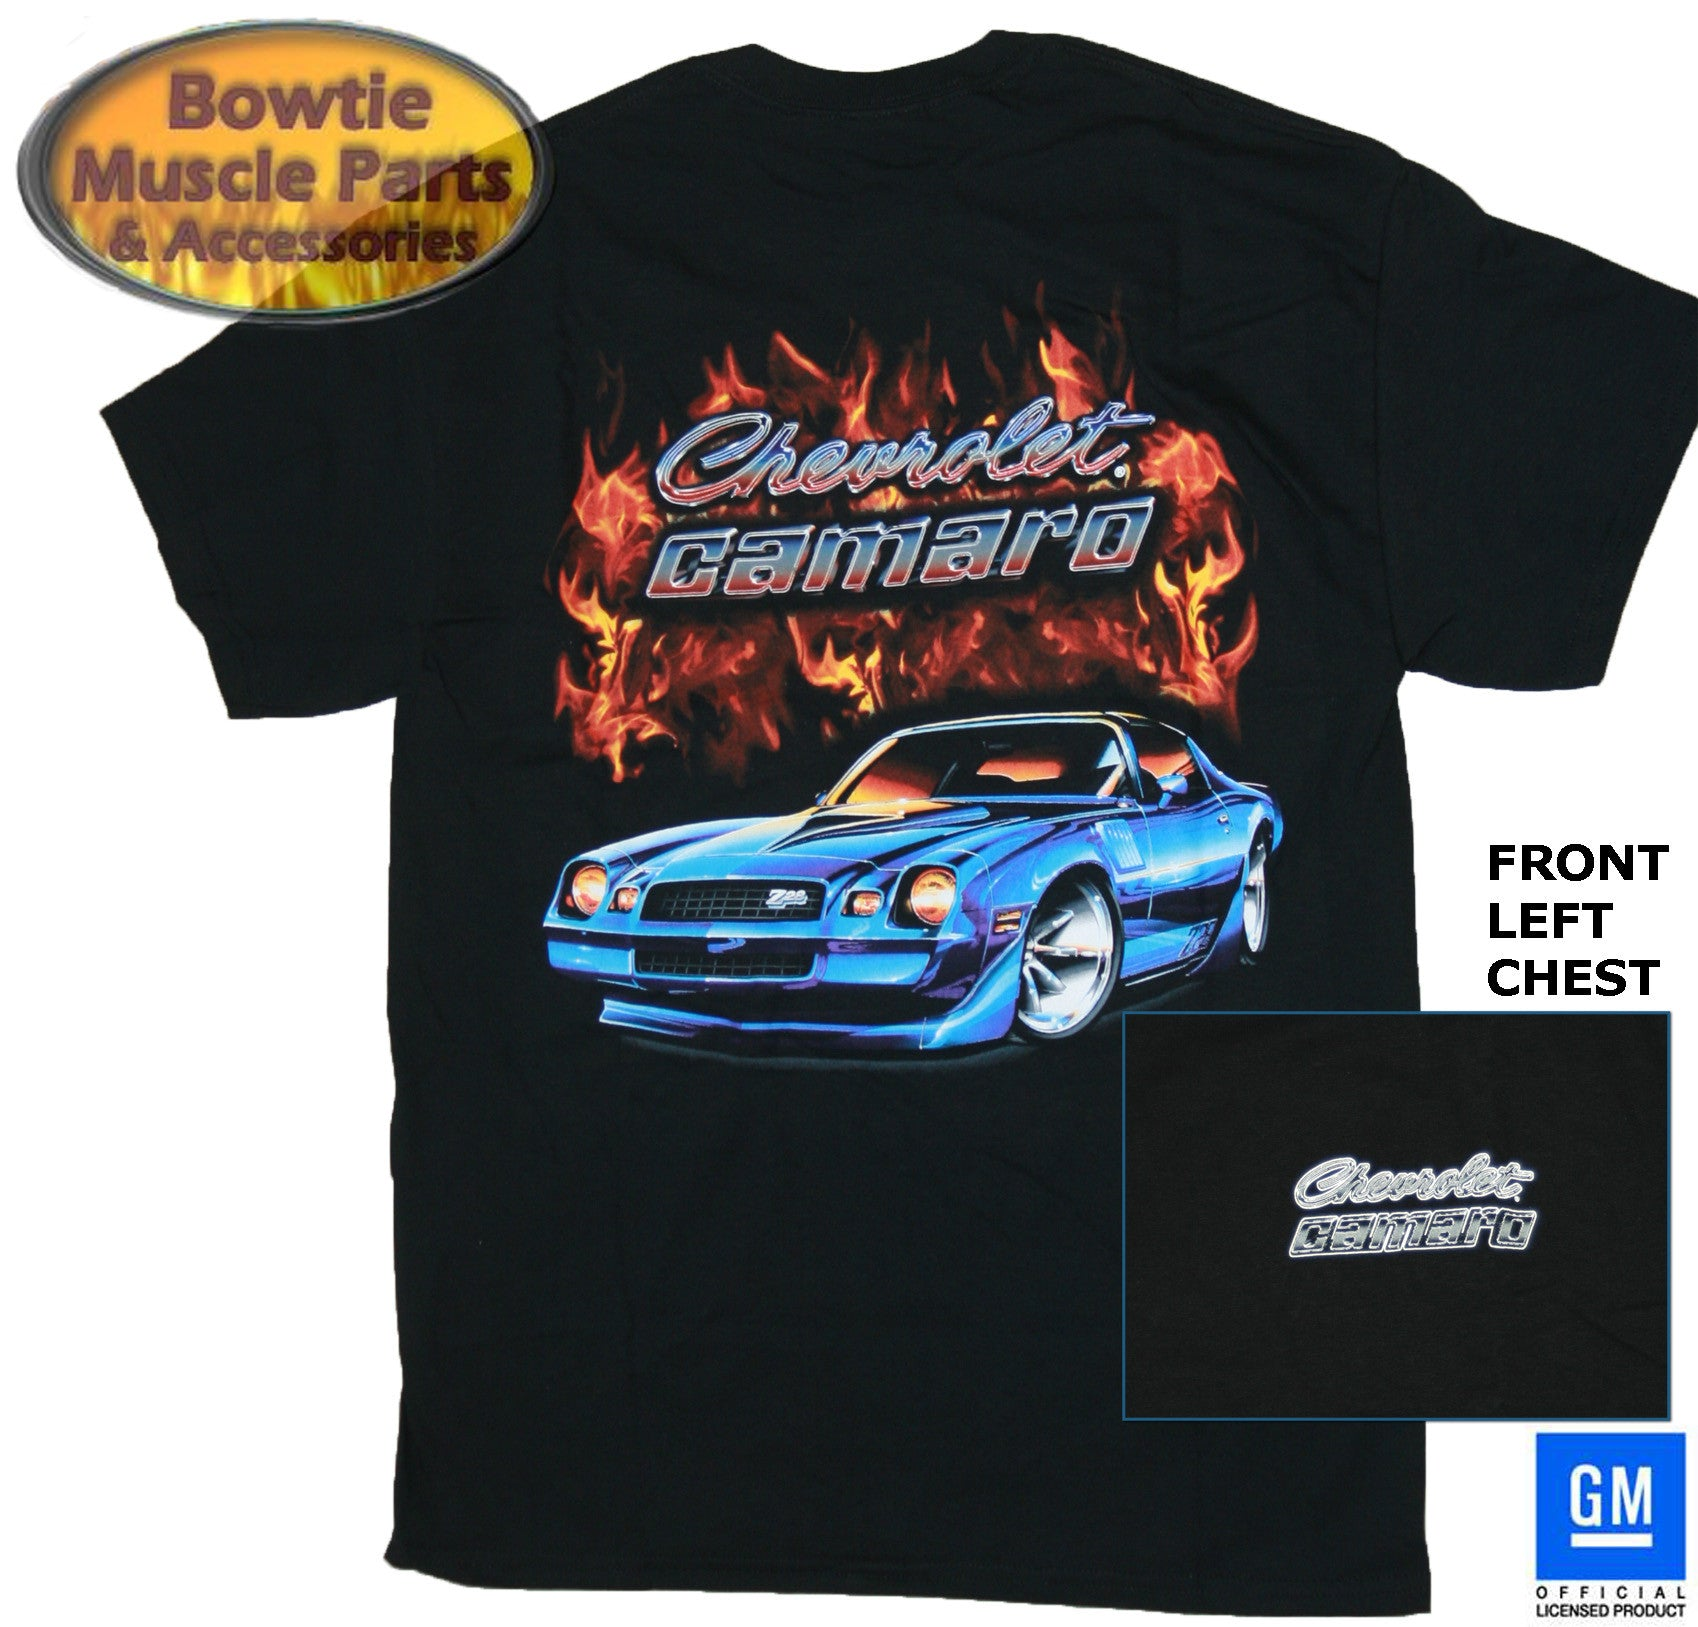 78 79 77 80 81 2ND GEN CAMARO Z28 FLAME T-SHIRT